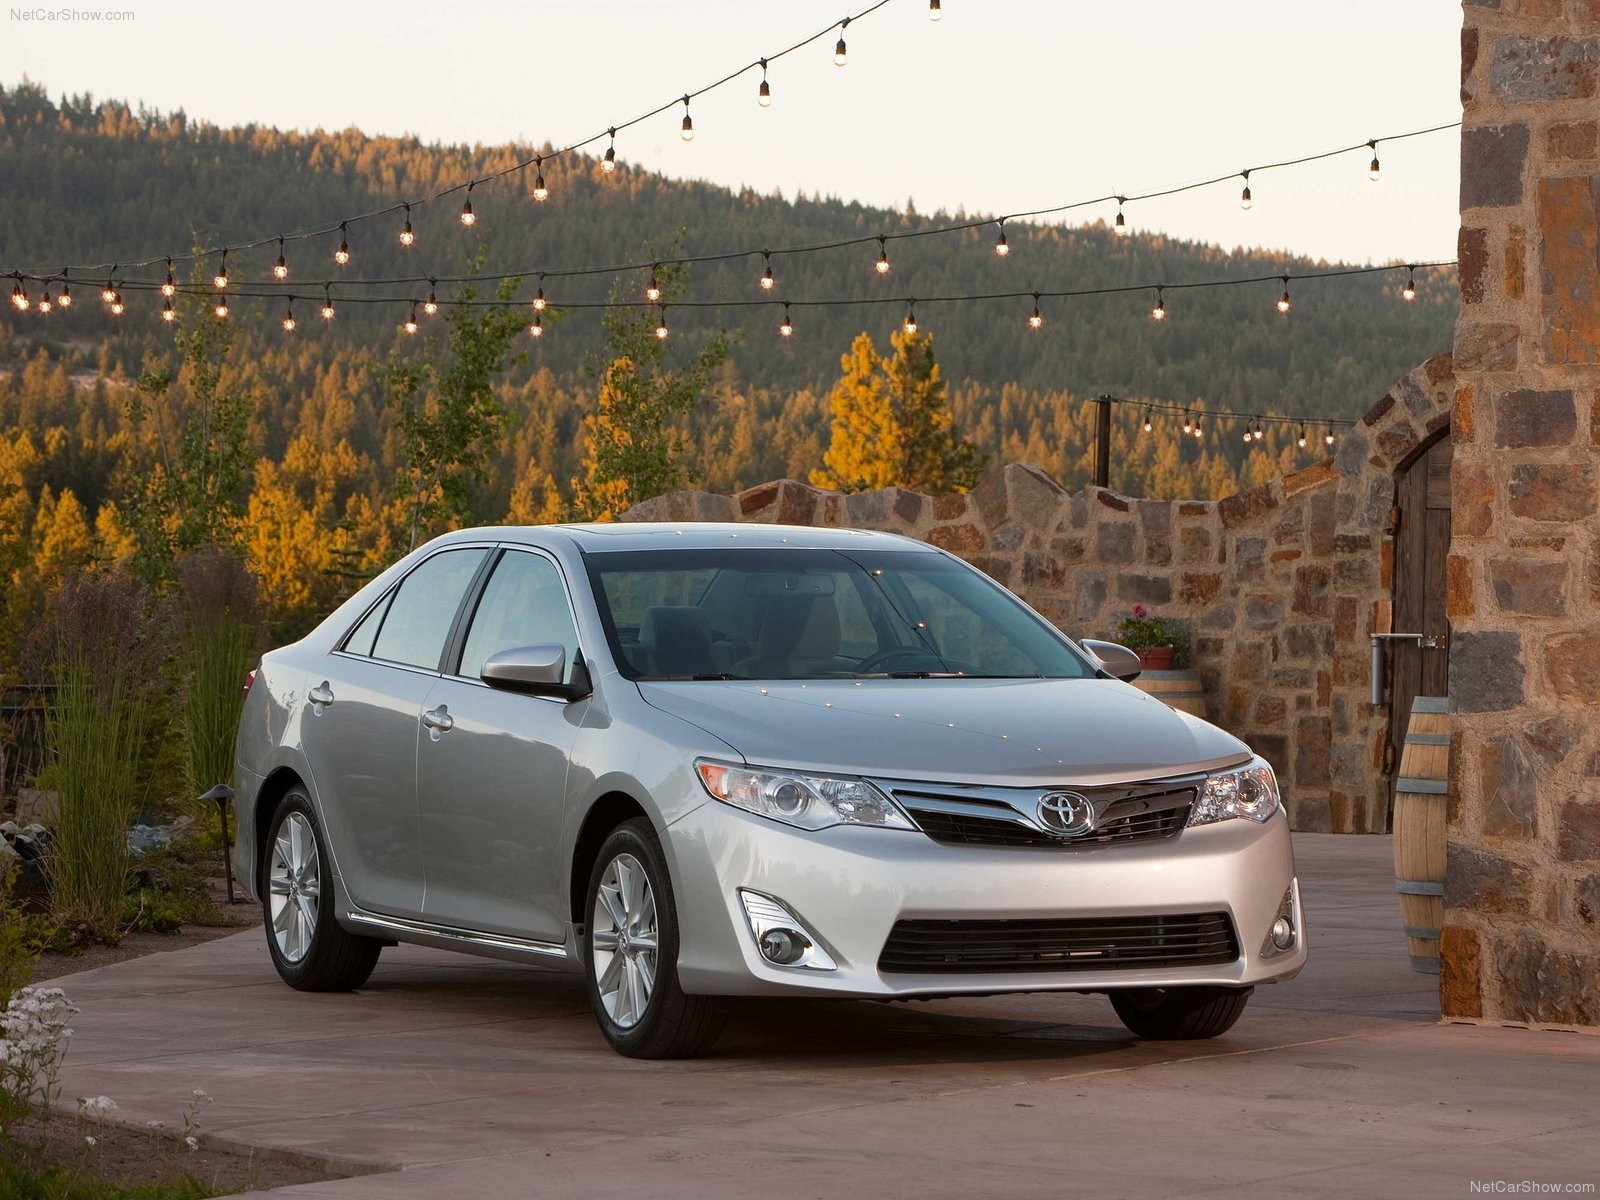 Tuning Toyota Camry Usa 2012 Online Accessories And Spare Parts For 1993 V6 Engine Diagram Sedan